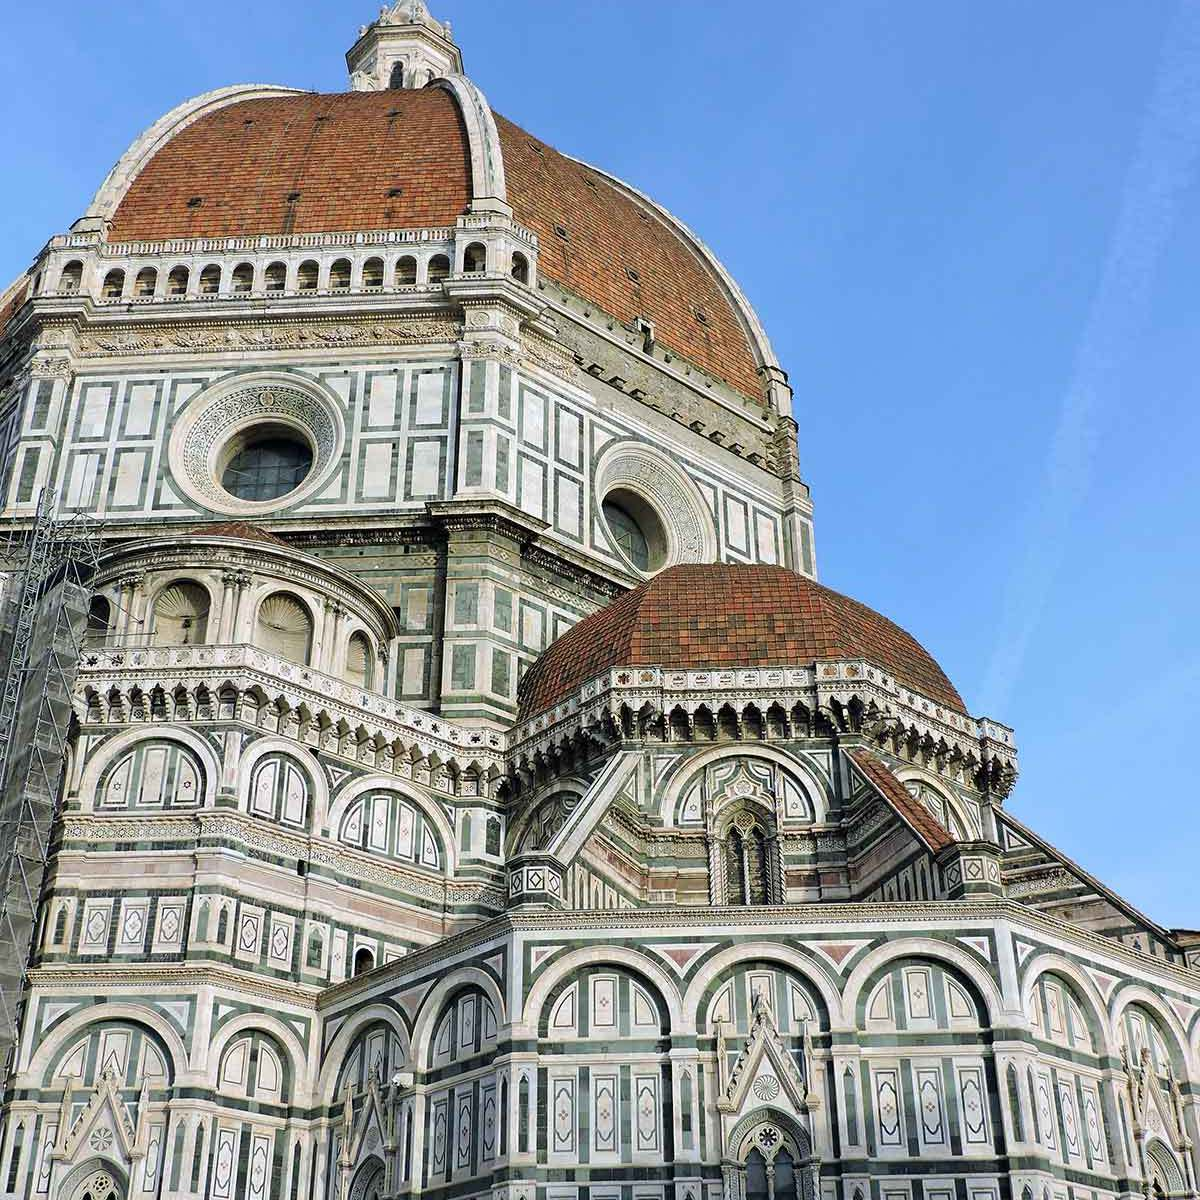 The Duomo dome in Florence, Italy